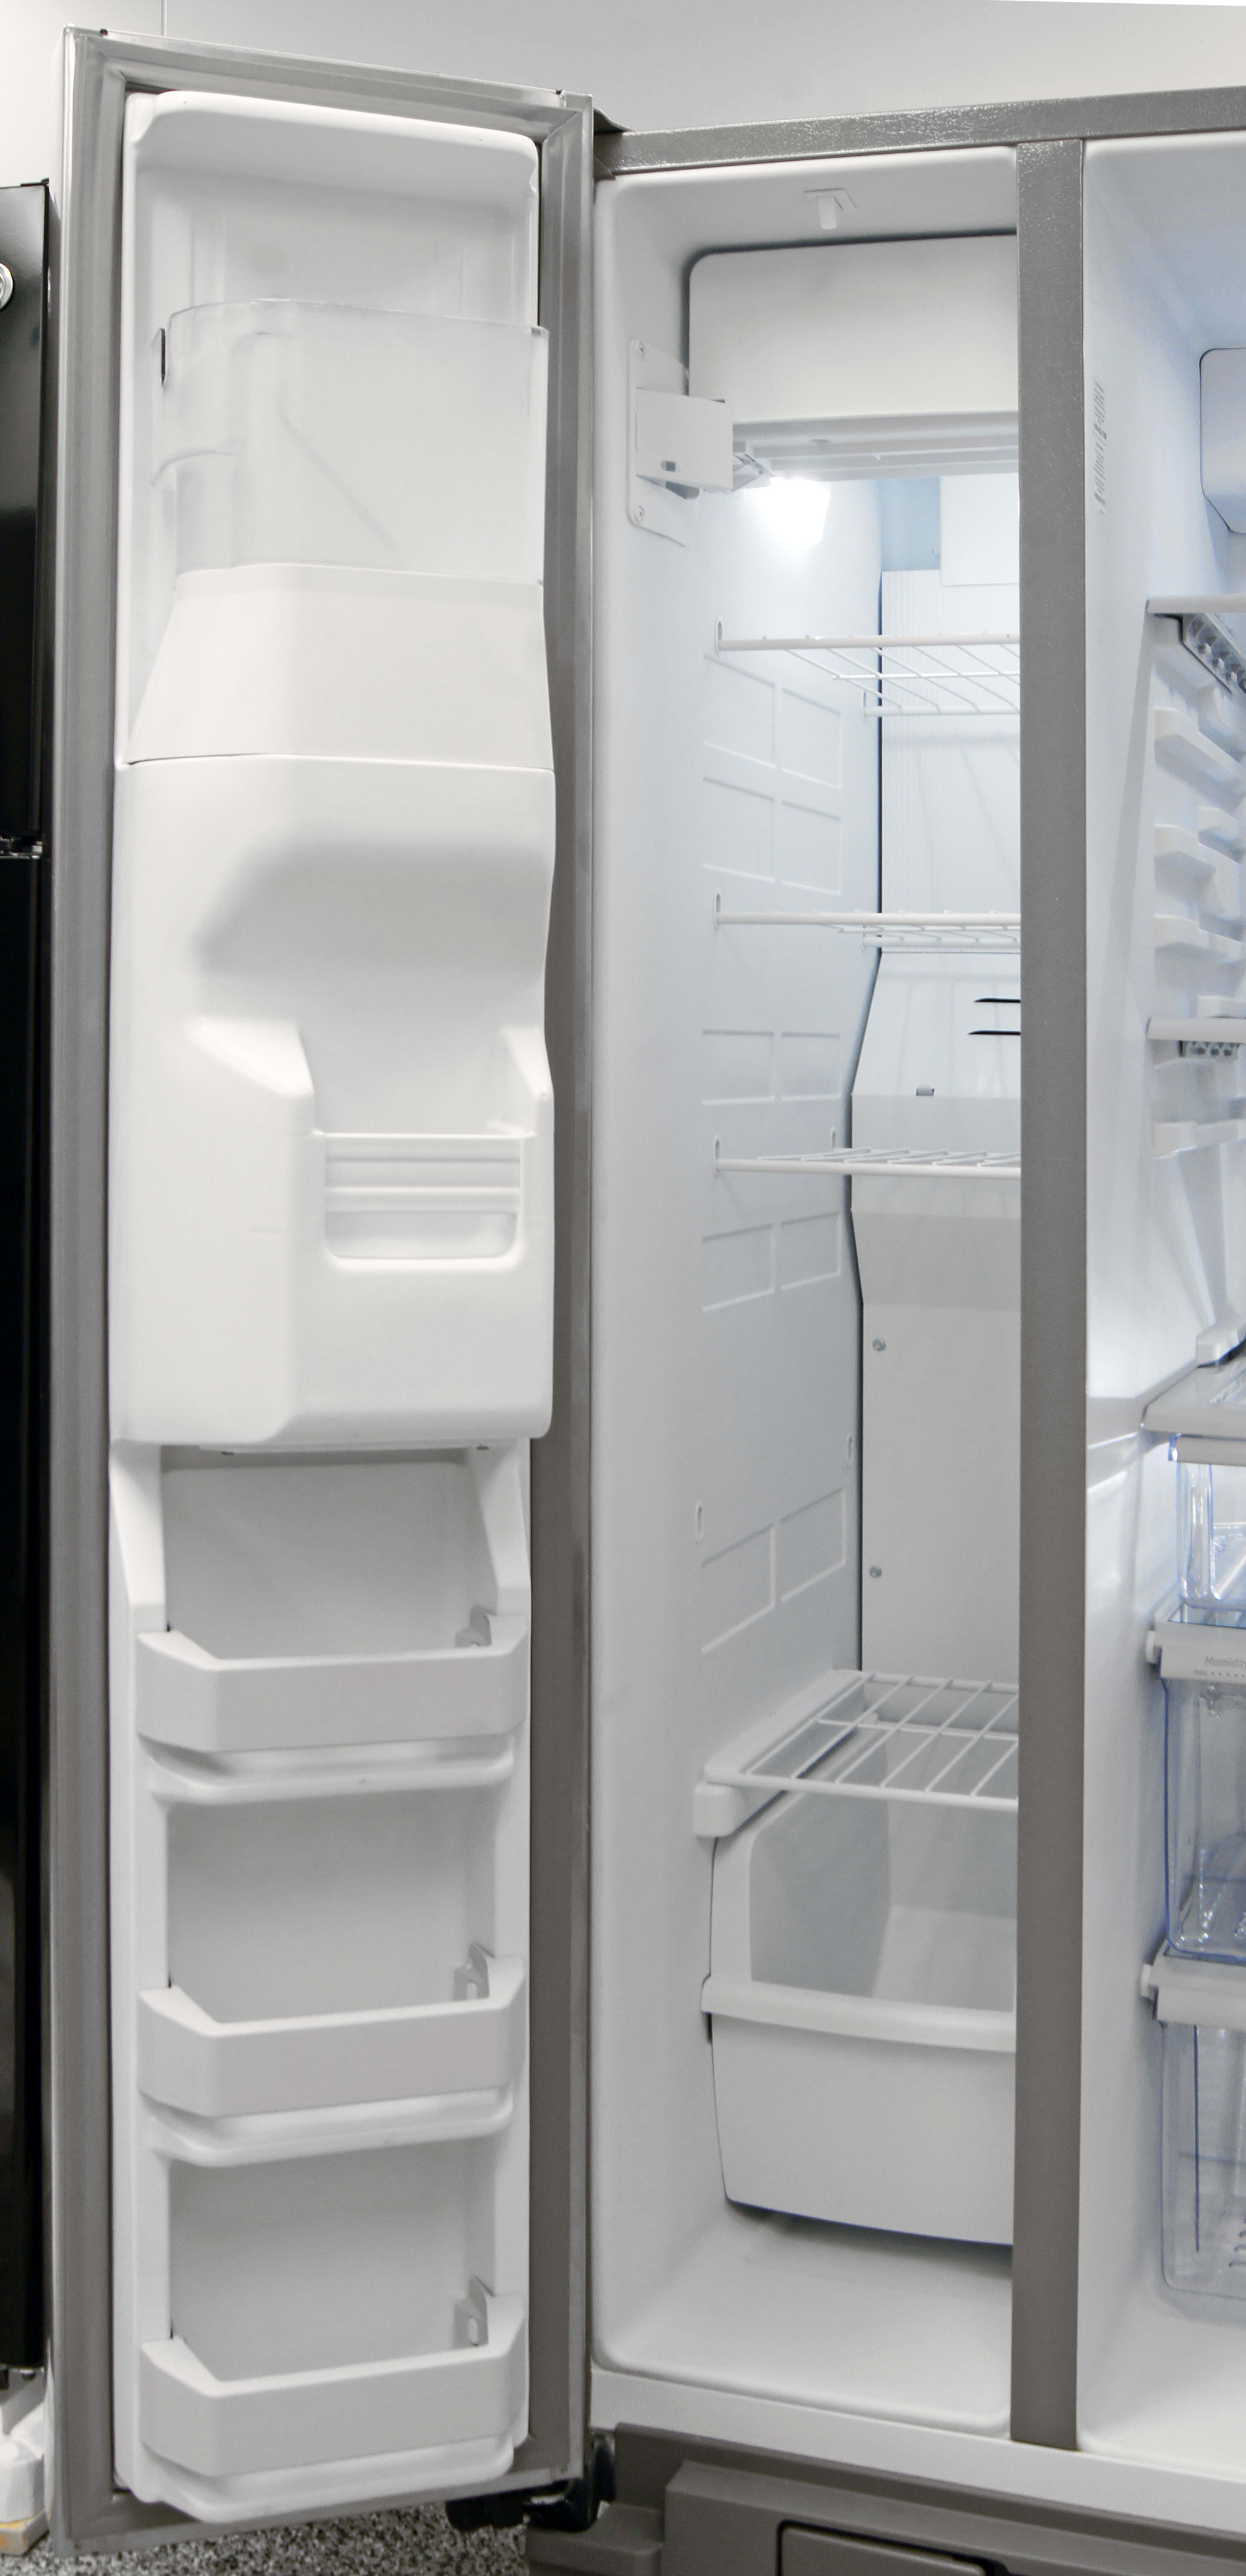 The KitchenAid KSF22C4CYY's freezer can feel quite cramped, depending on what sort of food you plan to put inside.